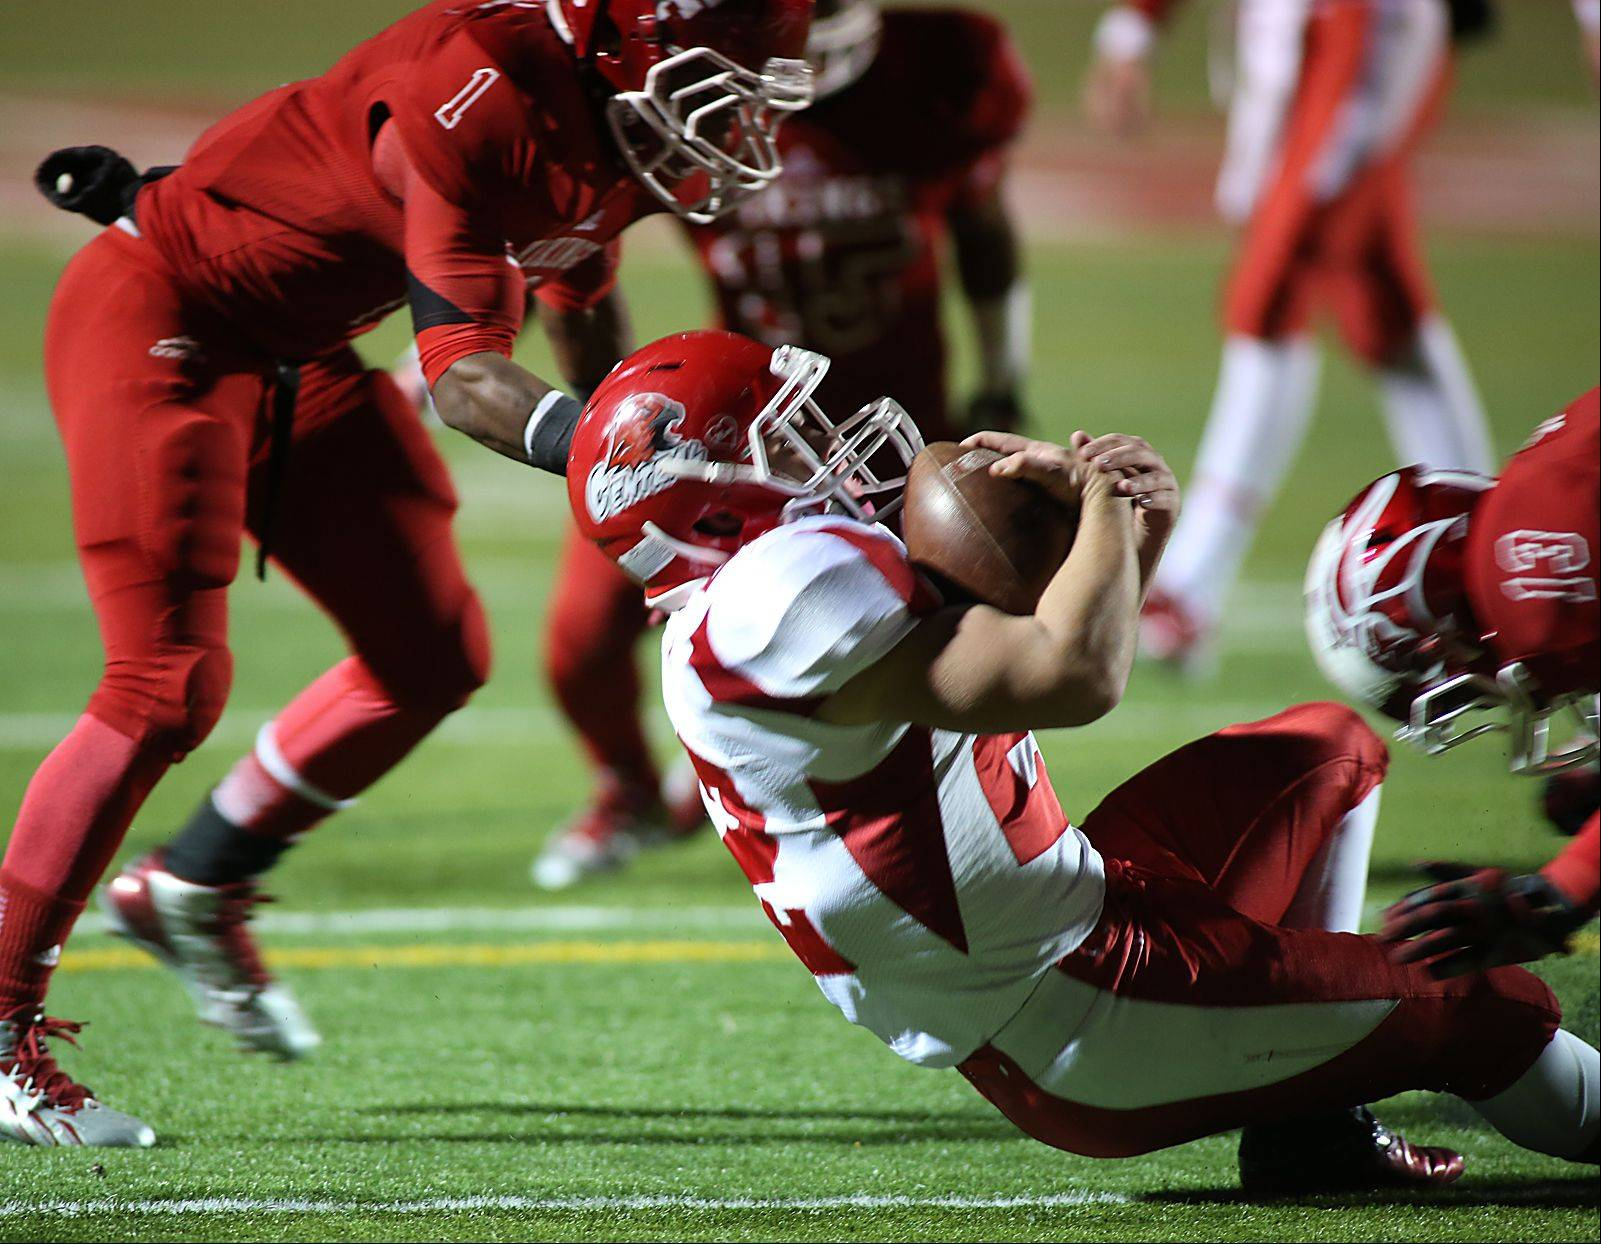 Naperville Central's Kevin Clifford looks to score against Homewood-Flossmoor.